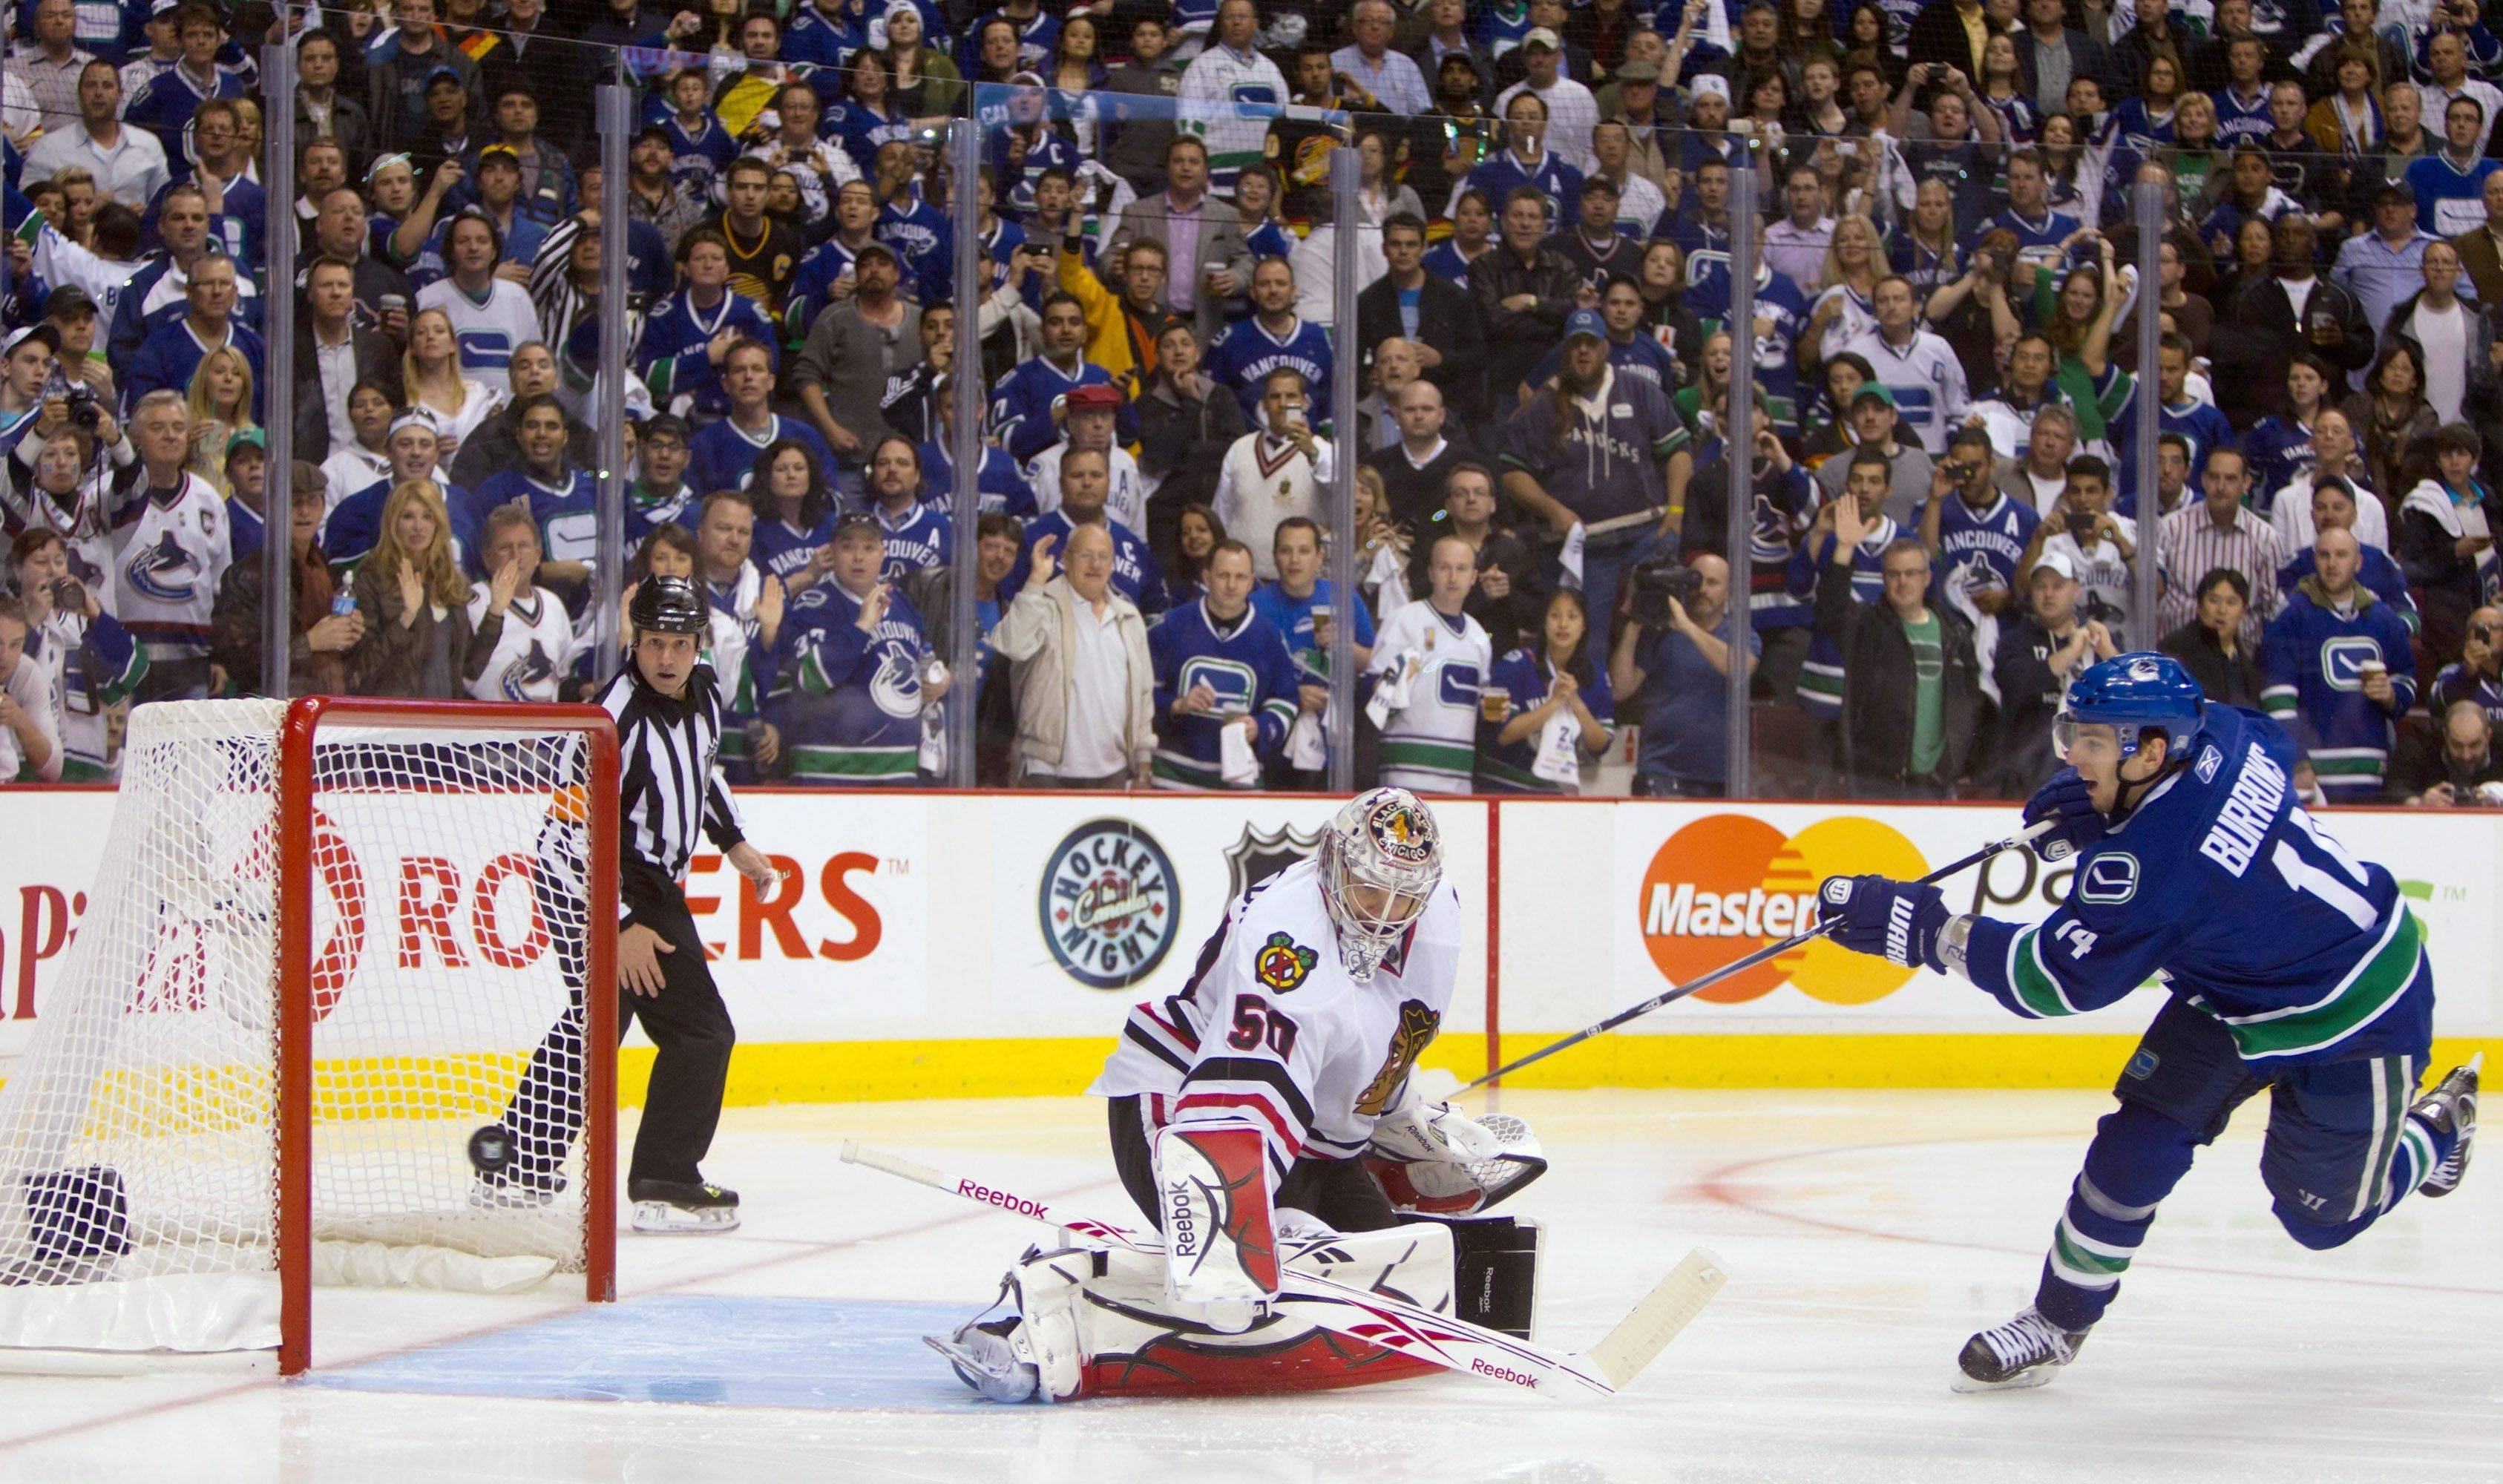 Vancouver Canucks' Alex Burrows is stopped on a penalty shot by Blackhawks goalie Corey Crawford in the third period of game 7.